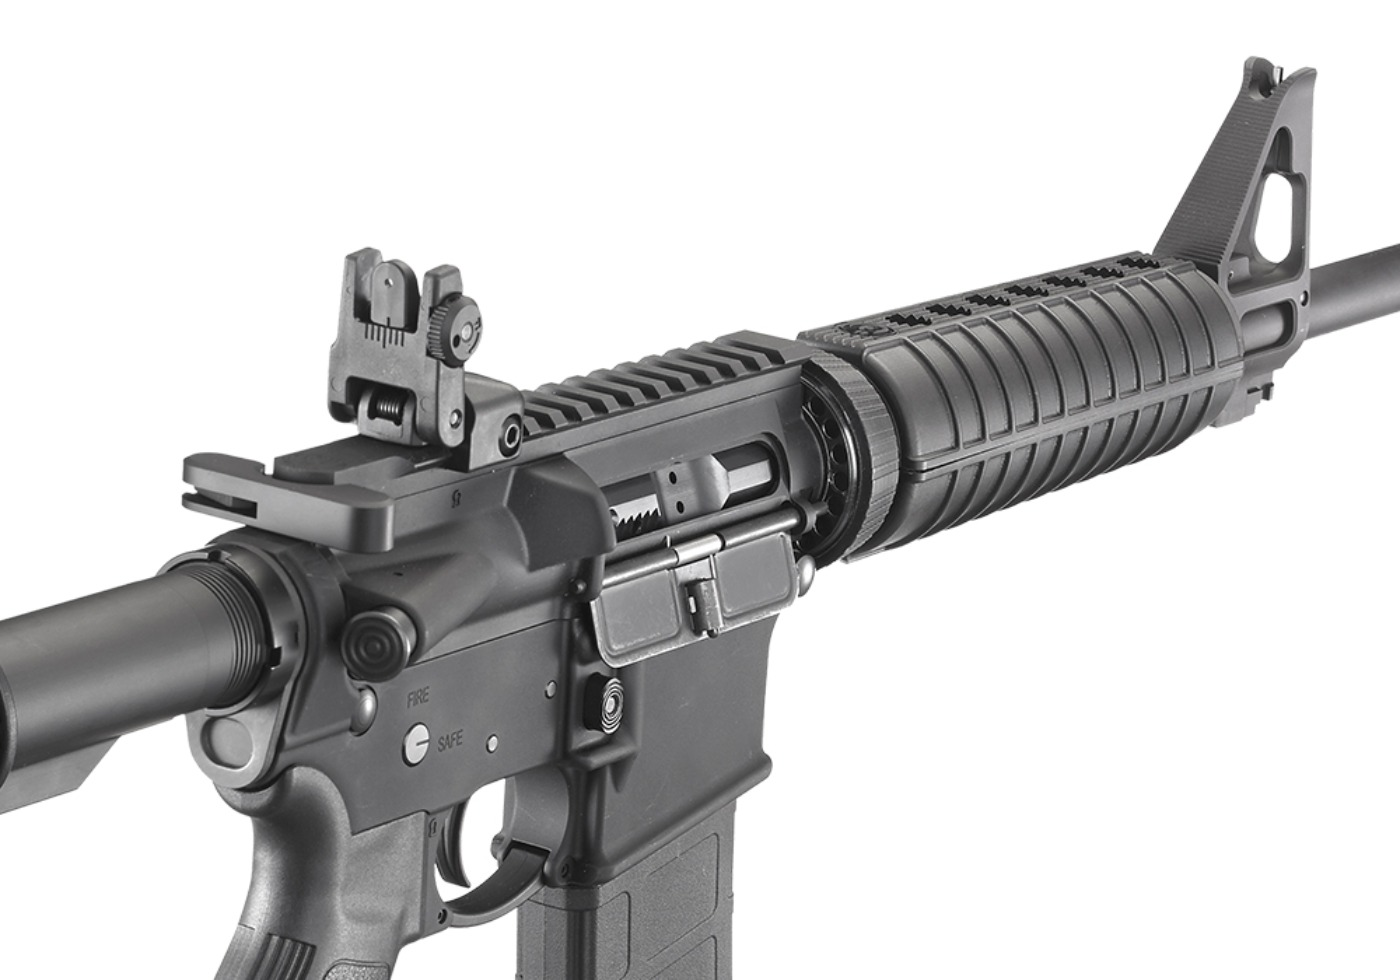 The AR-556 Is More Than Just Your Regular AR-15 'Pistol'